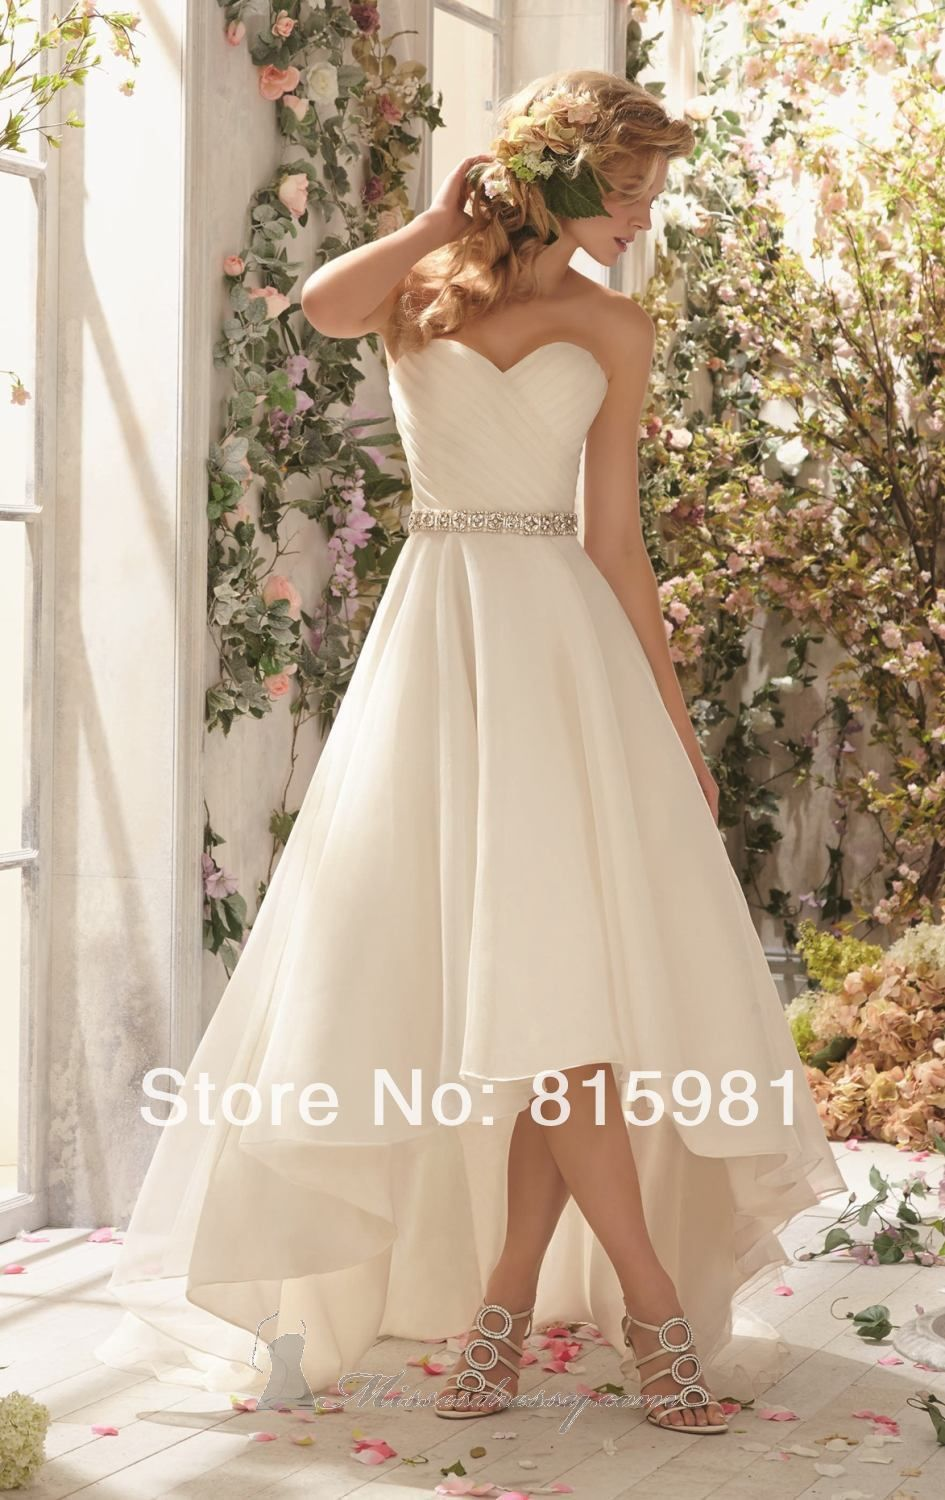 Cheap dress wedding gown, Buy Quality gown party directly